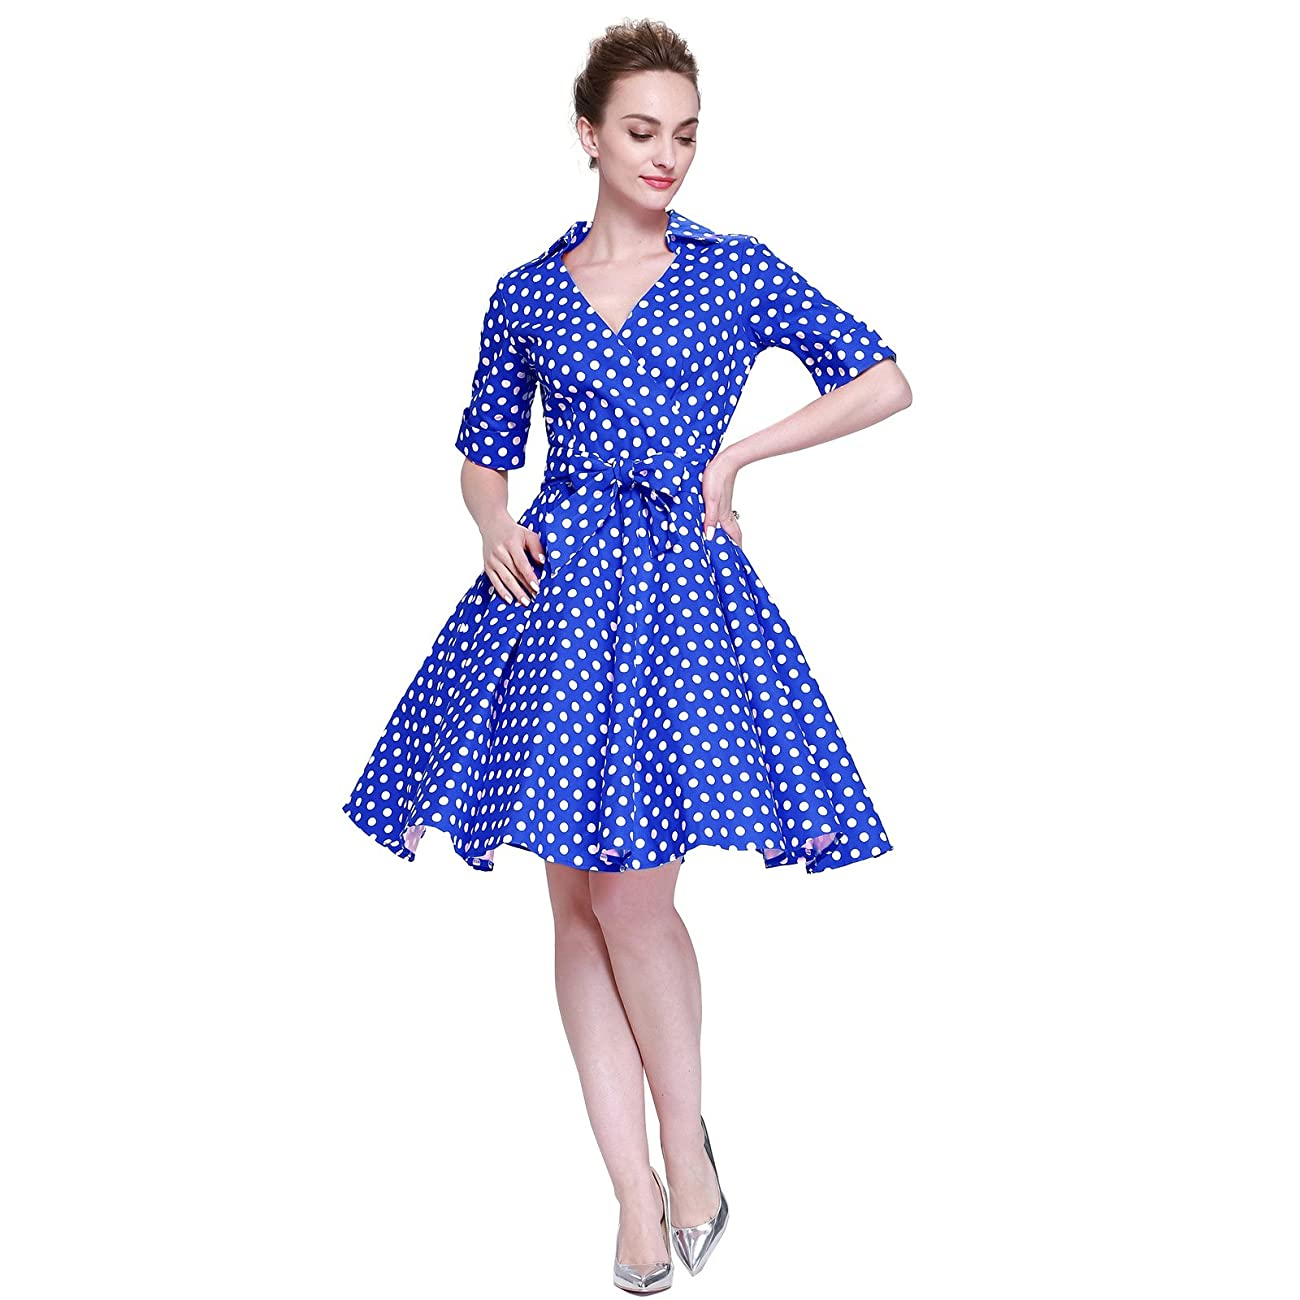 Heroecol Womens Vintage 1950s Dresses Cross V Neck Short Sleeve 50s 60s Style Retro Swing Cotton Dress 4